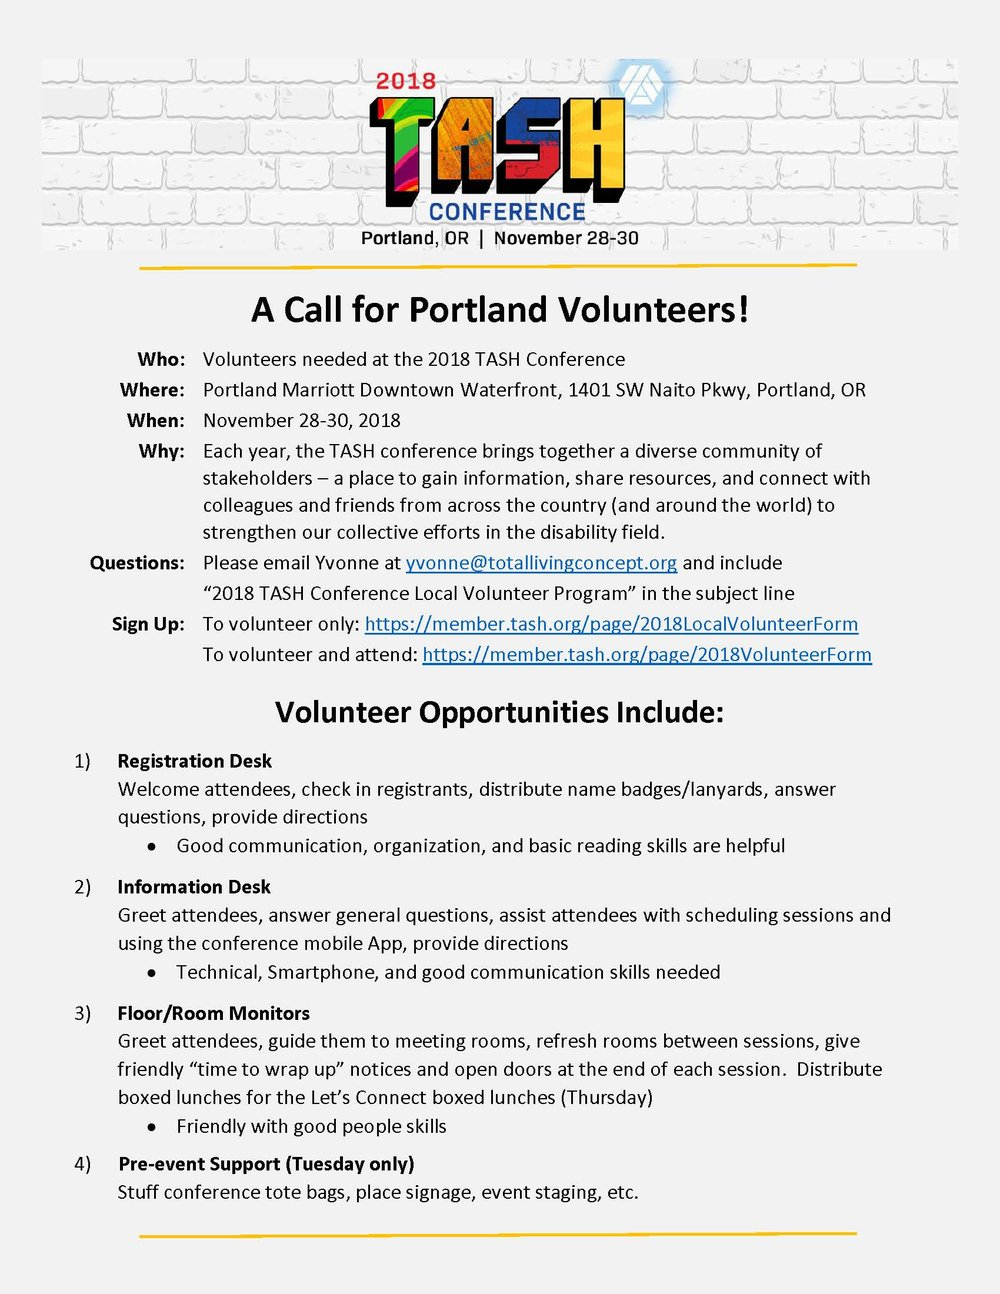 A Call for Portland Volunteers Flyer 2018_10_09 R2.jpg